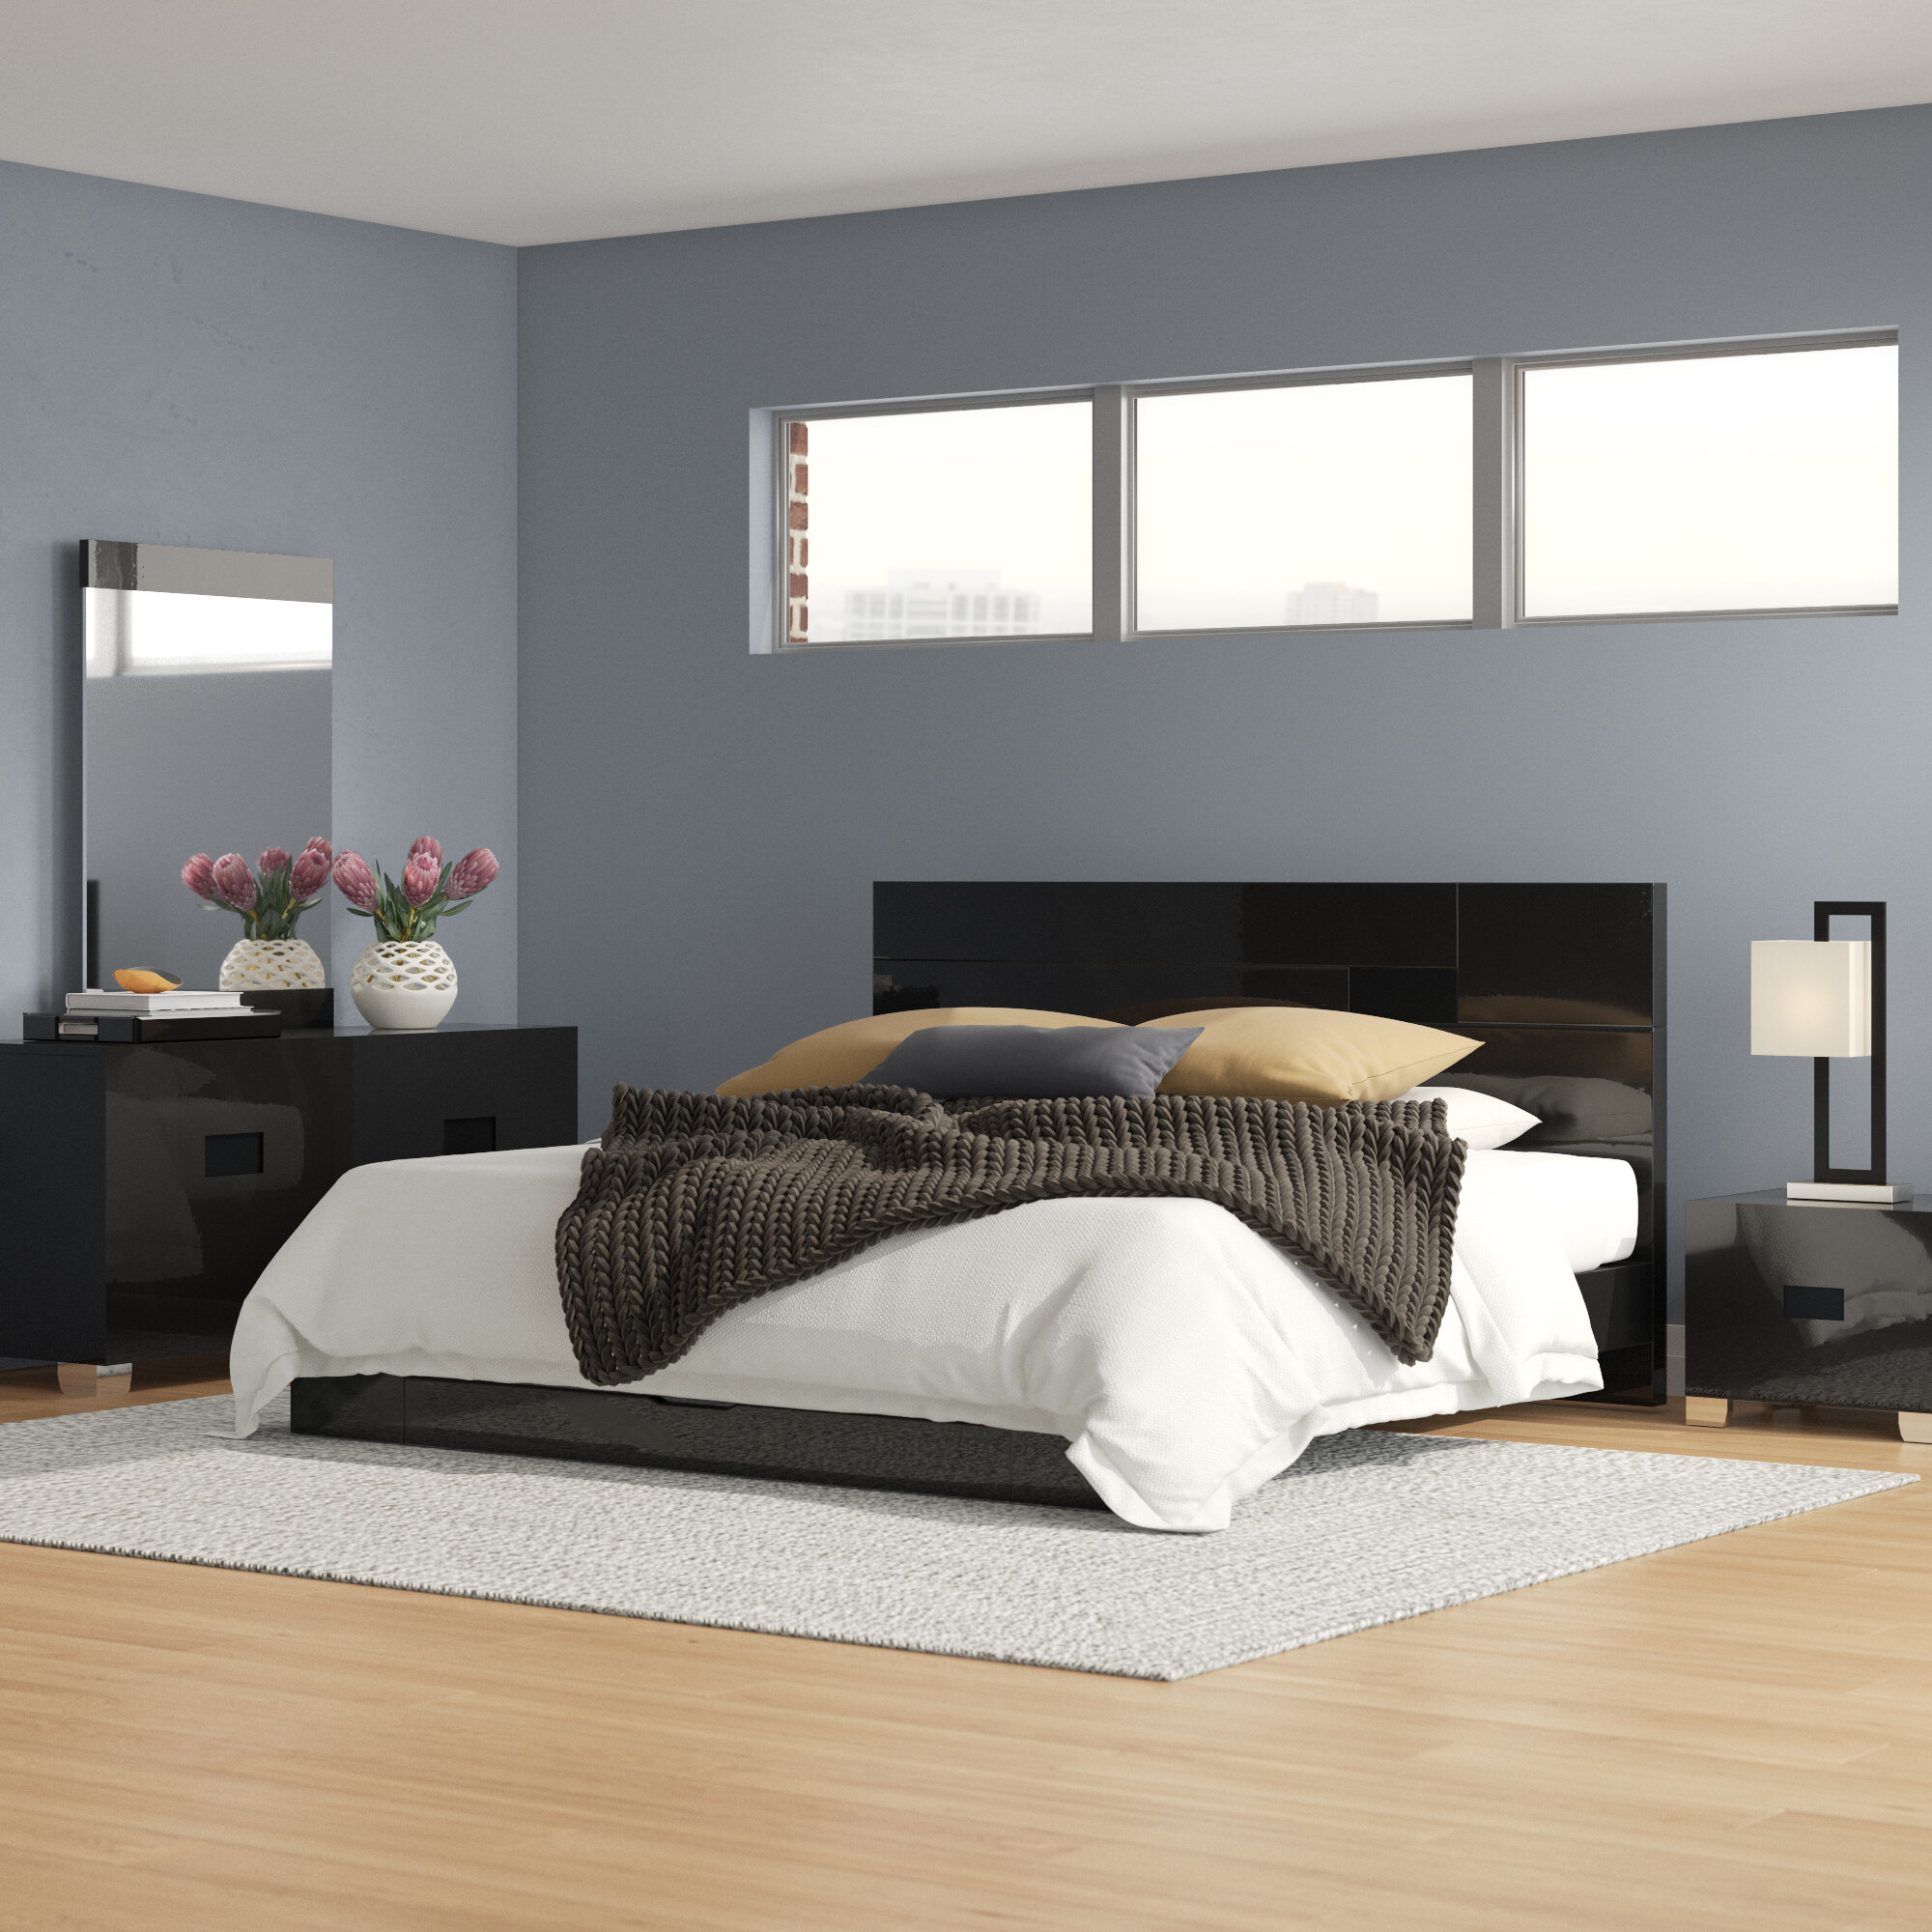 Wayfair King Modern Contemporary Bedroom Sets You Ll Love In 2021